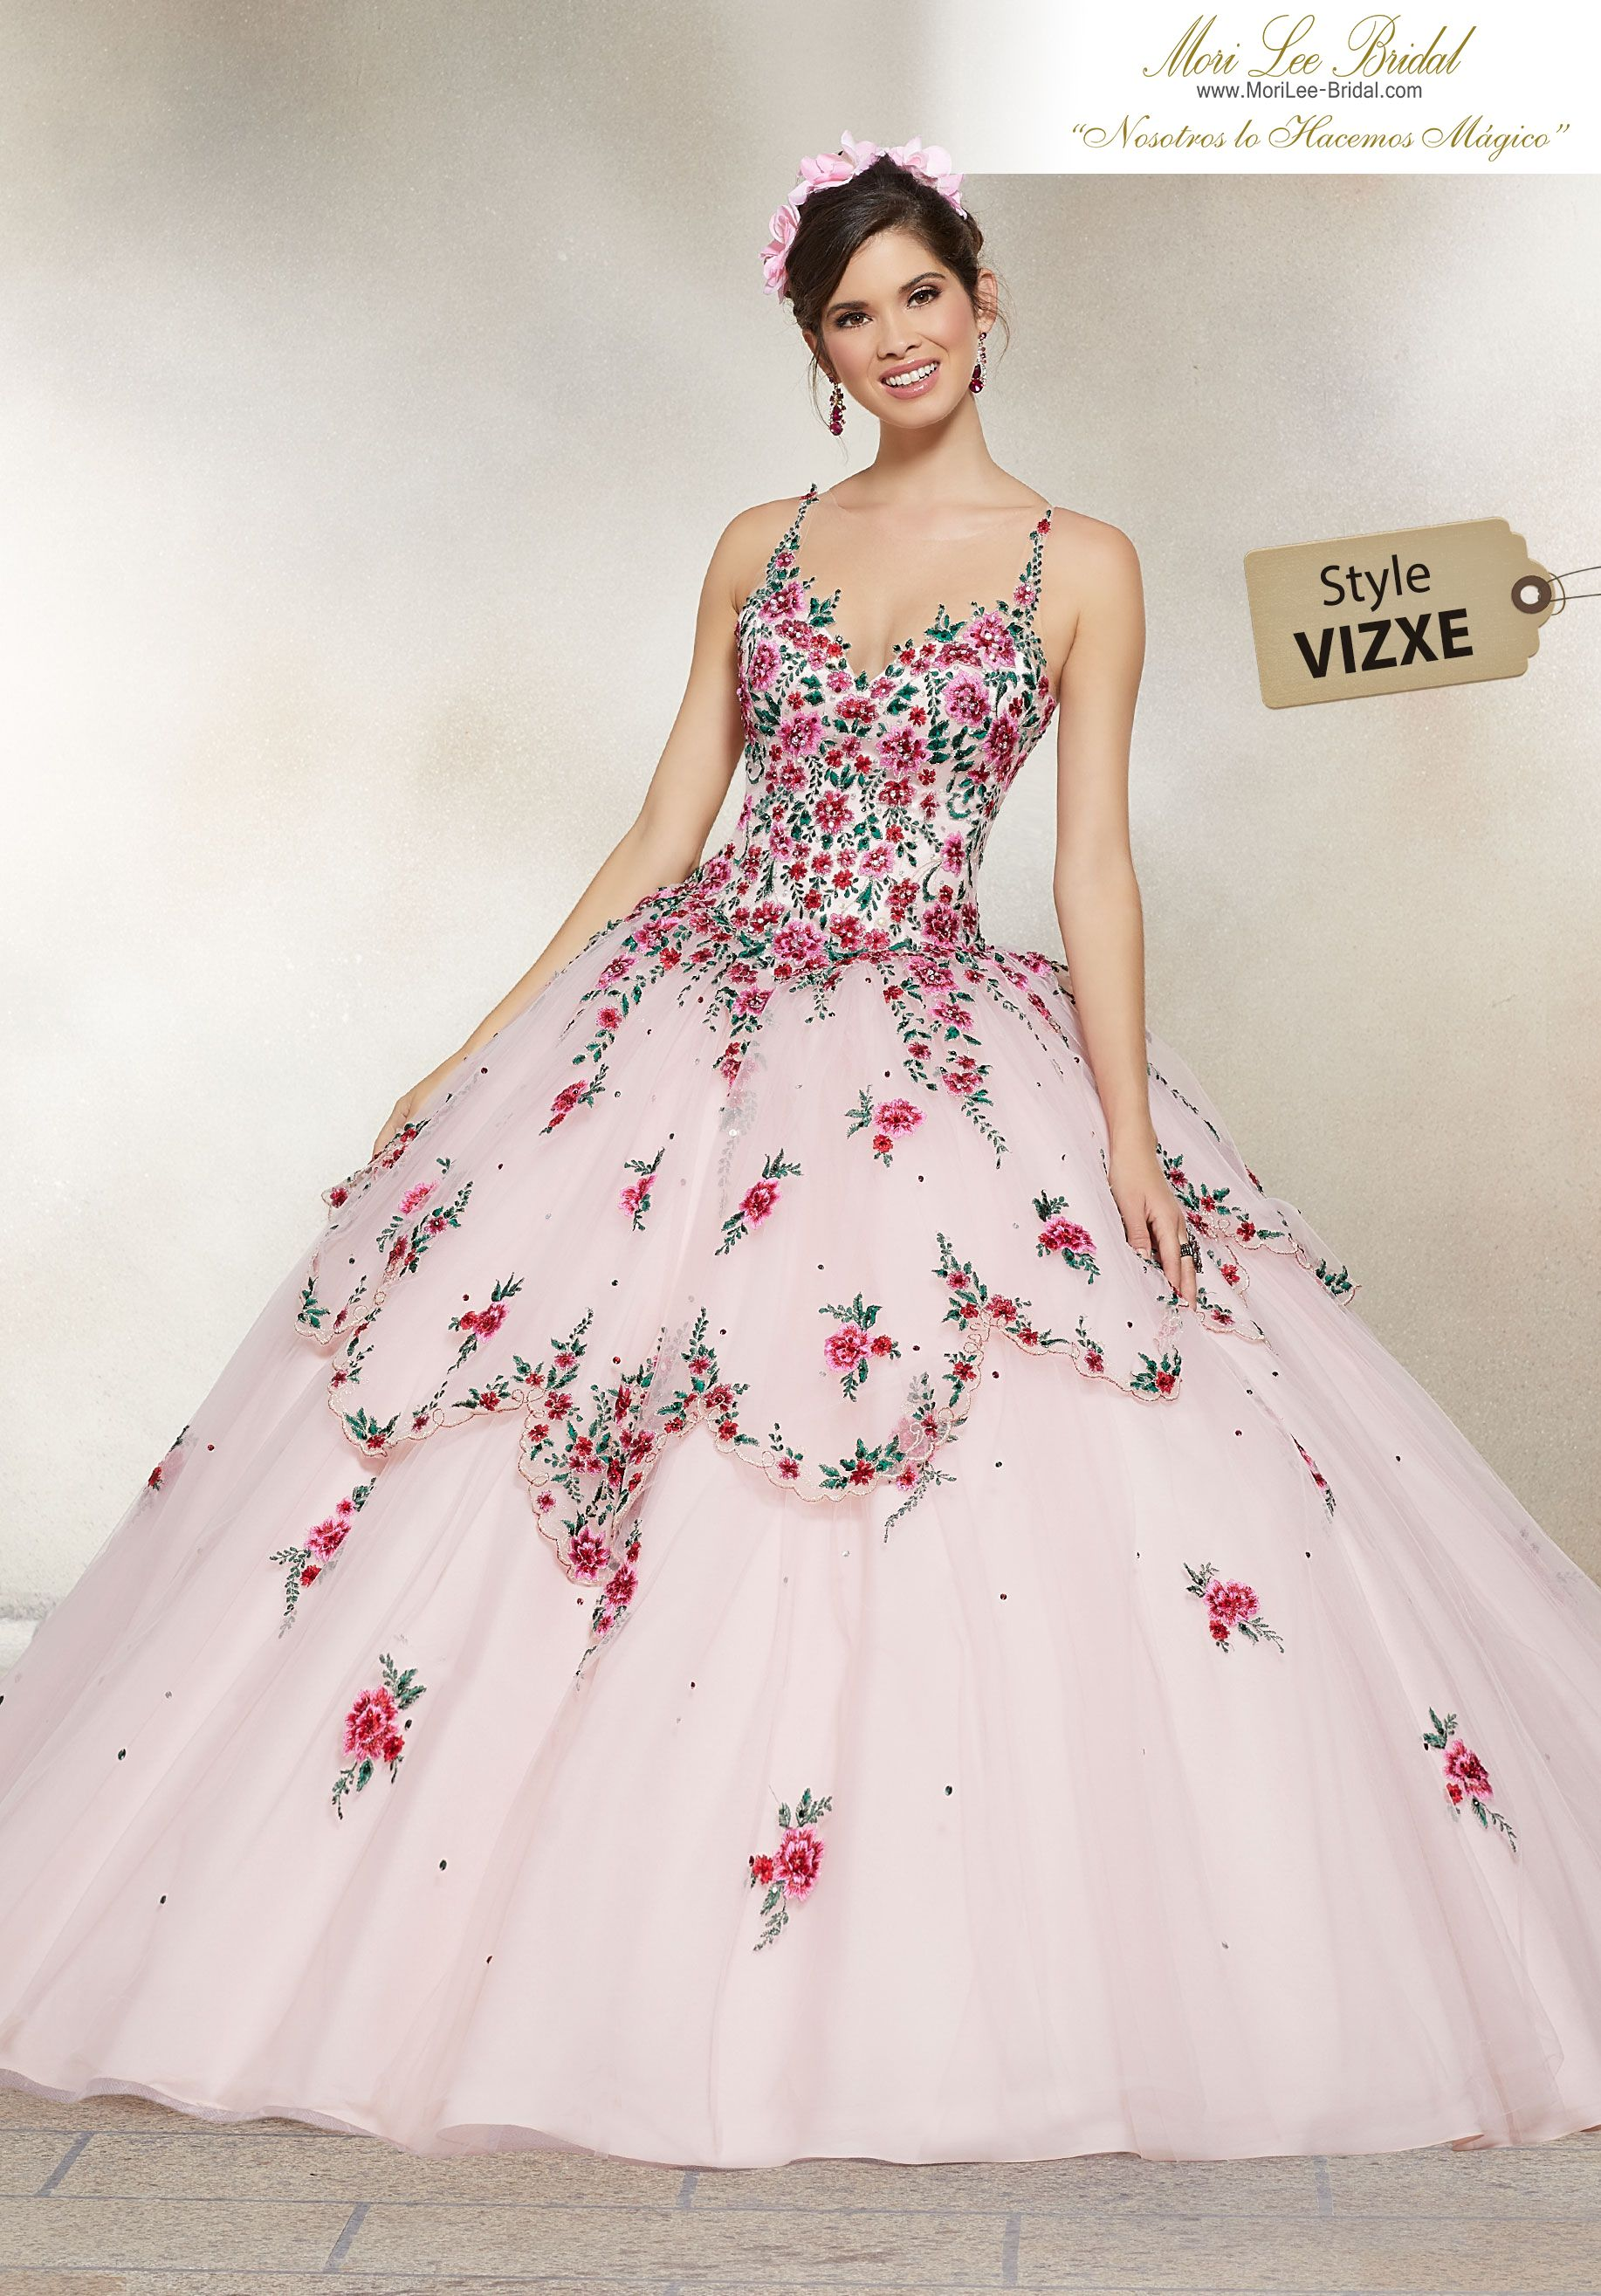 41888b10bfd Crystal Beaded Embroidery with Scalloped Skirt Overlay on a Tulle Ballgown  This Gorgeous Quinceañera Ballgown Perfectly